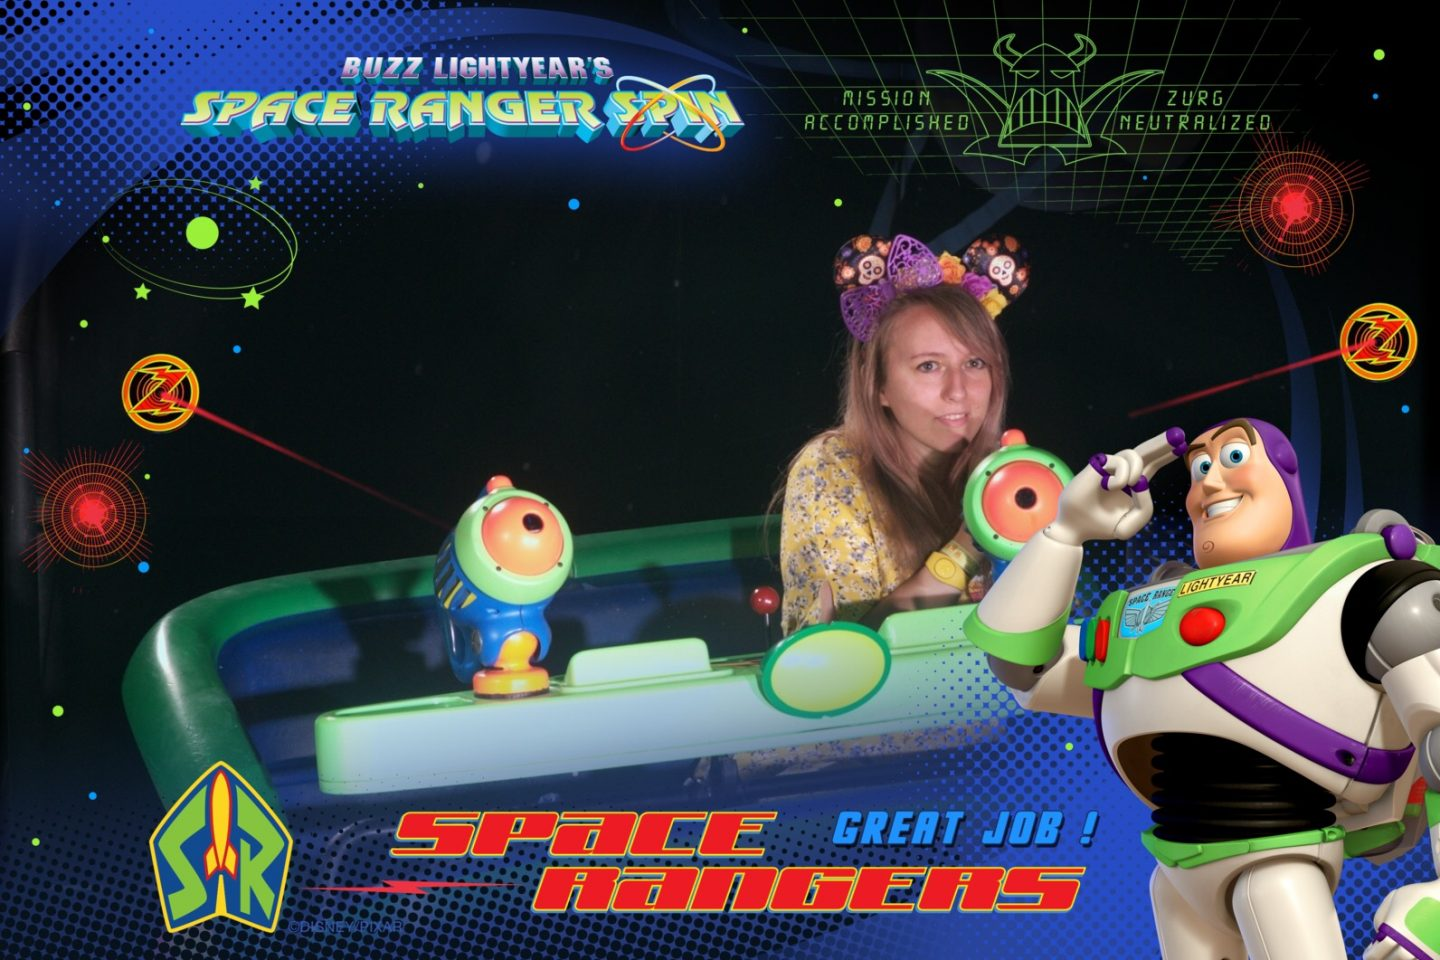 Disney World Buzz Lightyear Space Ranger Spin